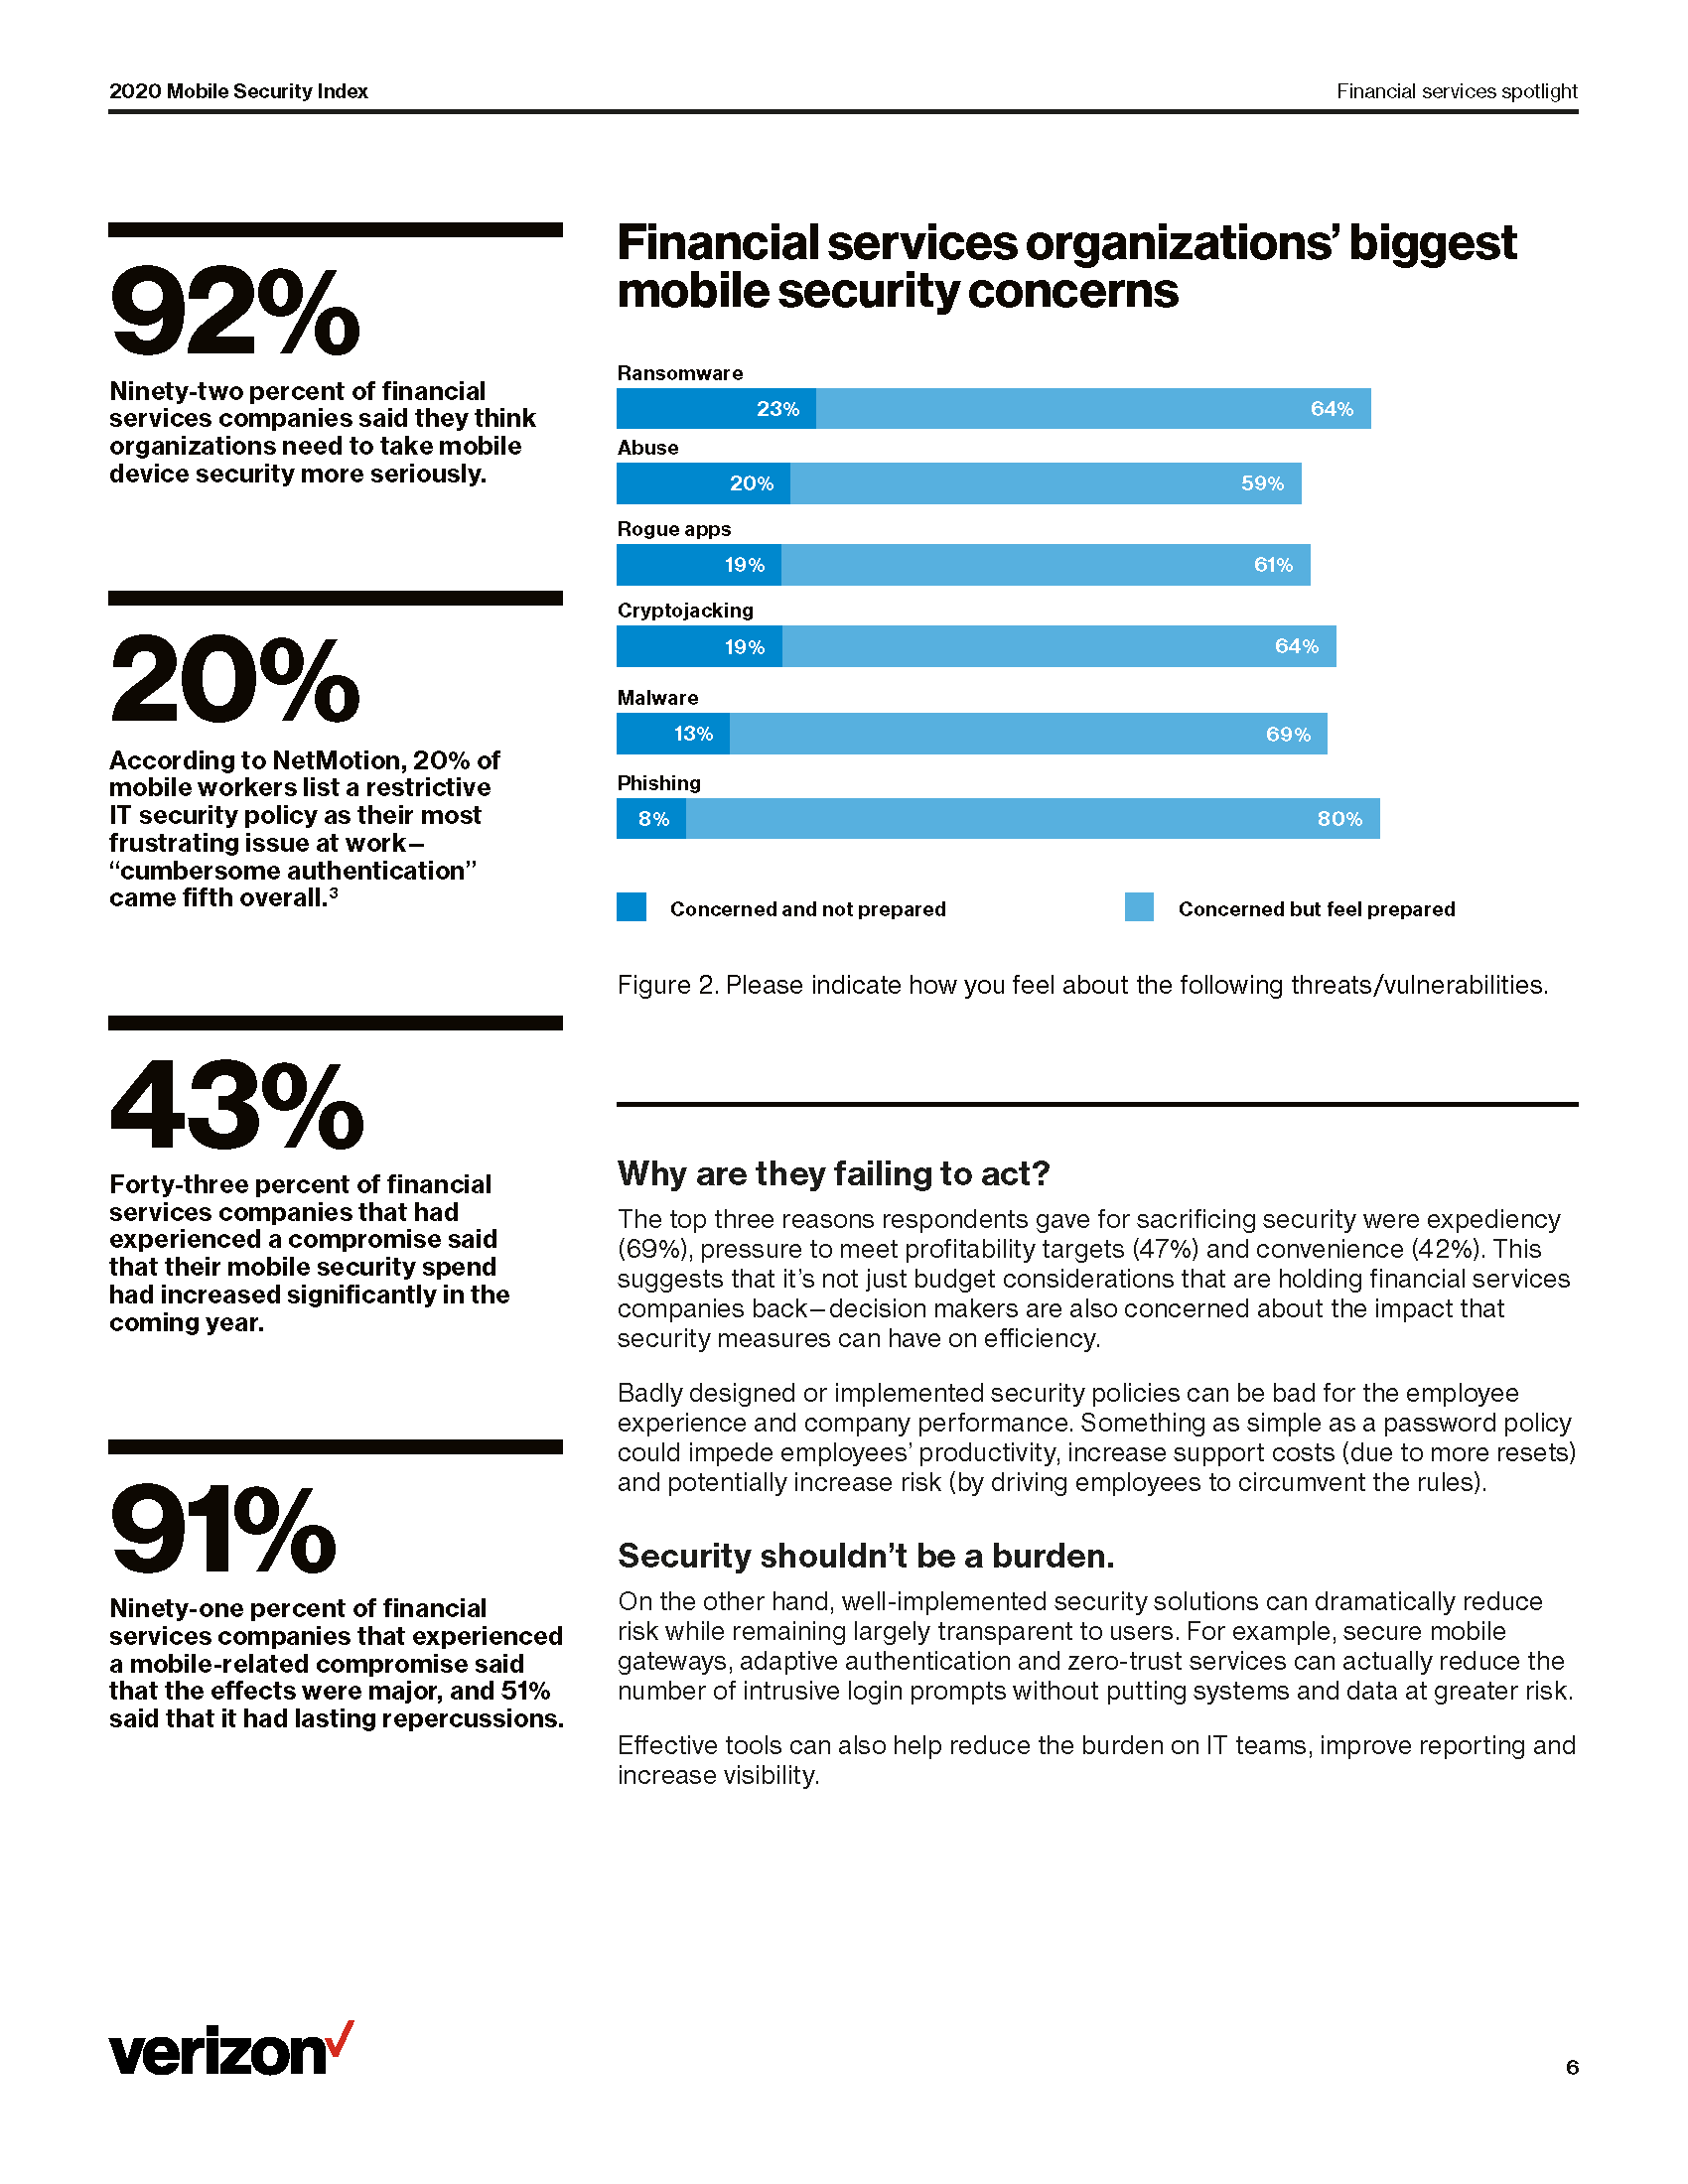 Excerpt from the Mobile Security Index 2020